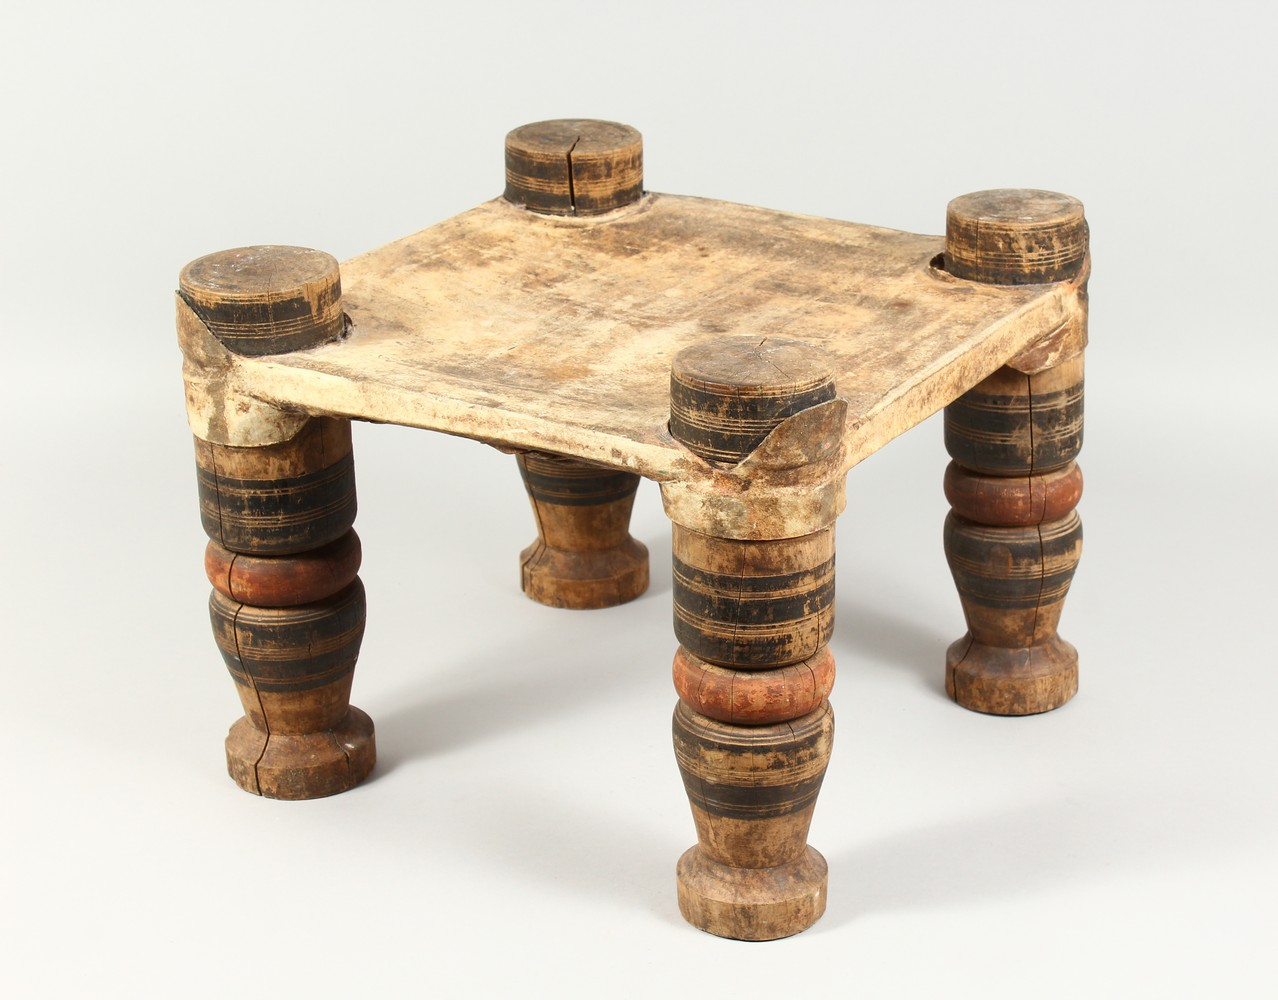 A NORTH AFRICAN PAINTED WOOD AND ANIMAL SKIN SQUARE SHAPED STOOL. 15ins wide x 11.5ins high.